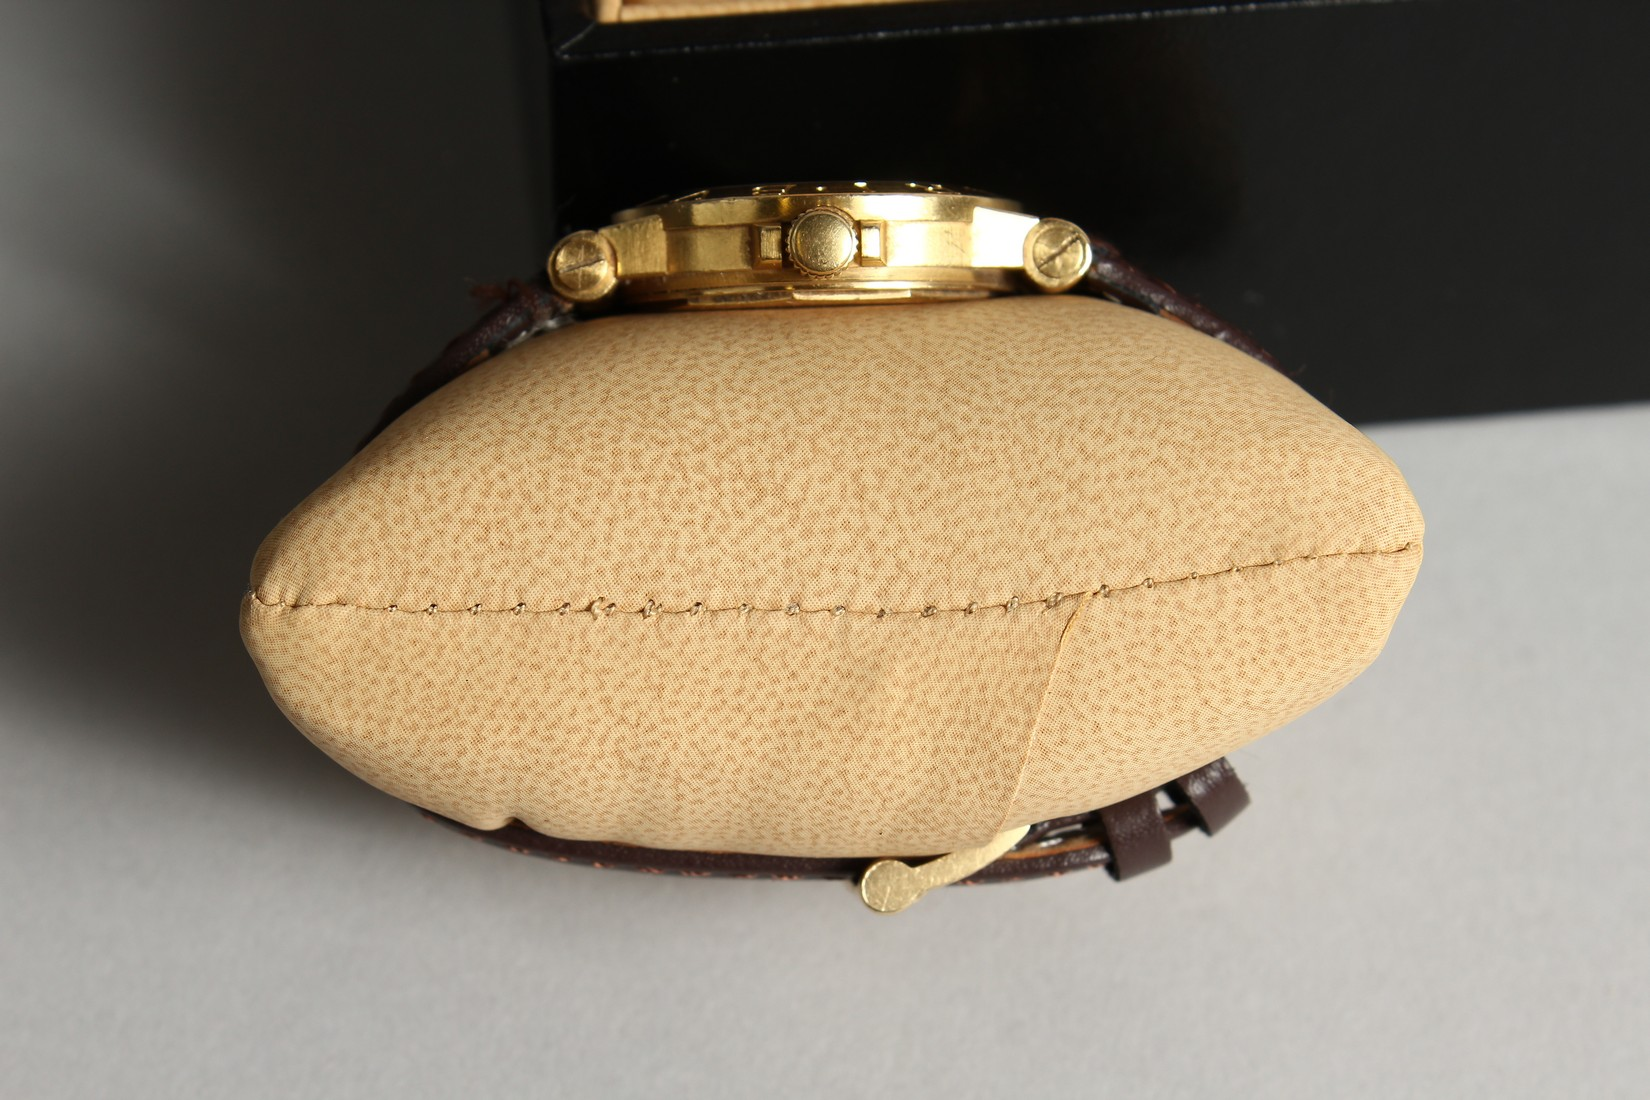 AN 18CT. GOLD BULGARI WRIST WATCH with leather strap, in original box. - Image 8 of 10